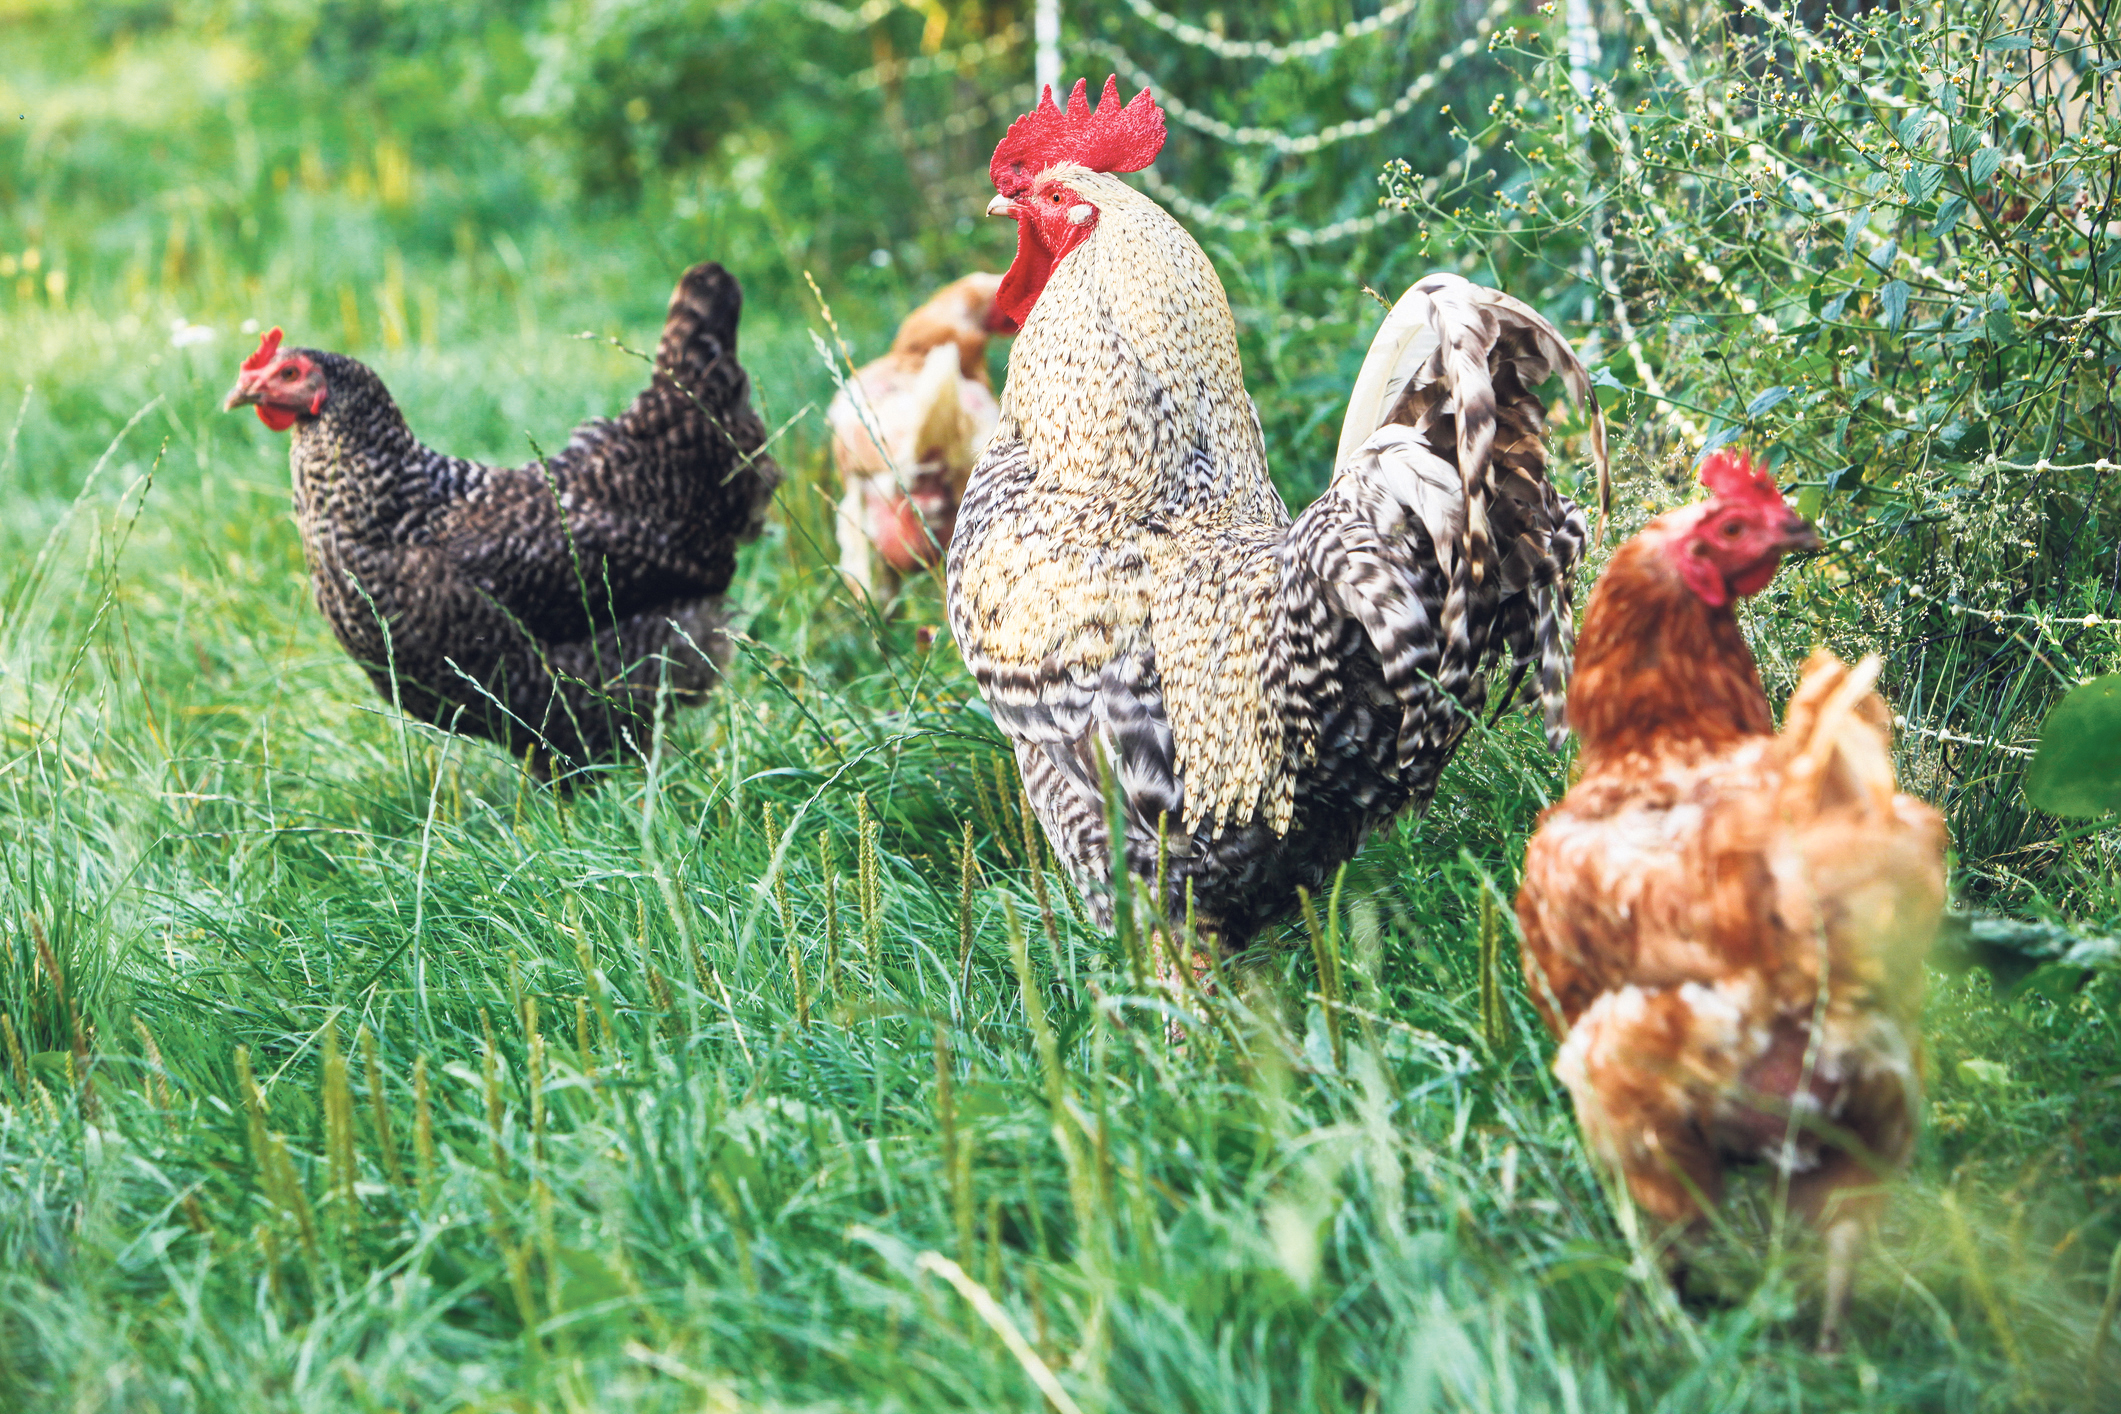 It all starts at the farm, where chickens live in barns featuring natural light and ventilation, are free to roam about and even have seasonal access to outdoor pastureland where they can peck at the grass and 'do bird things.' istock.com